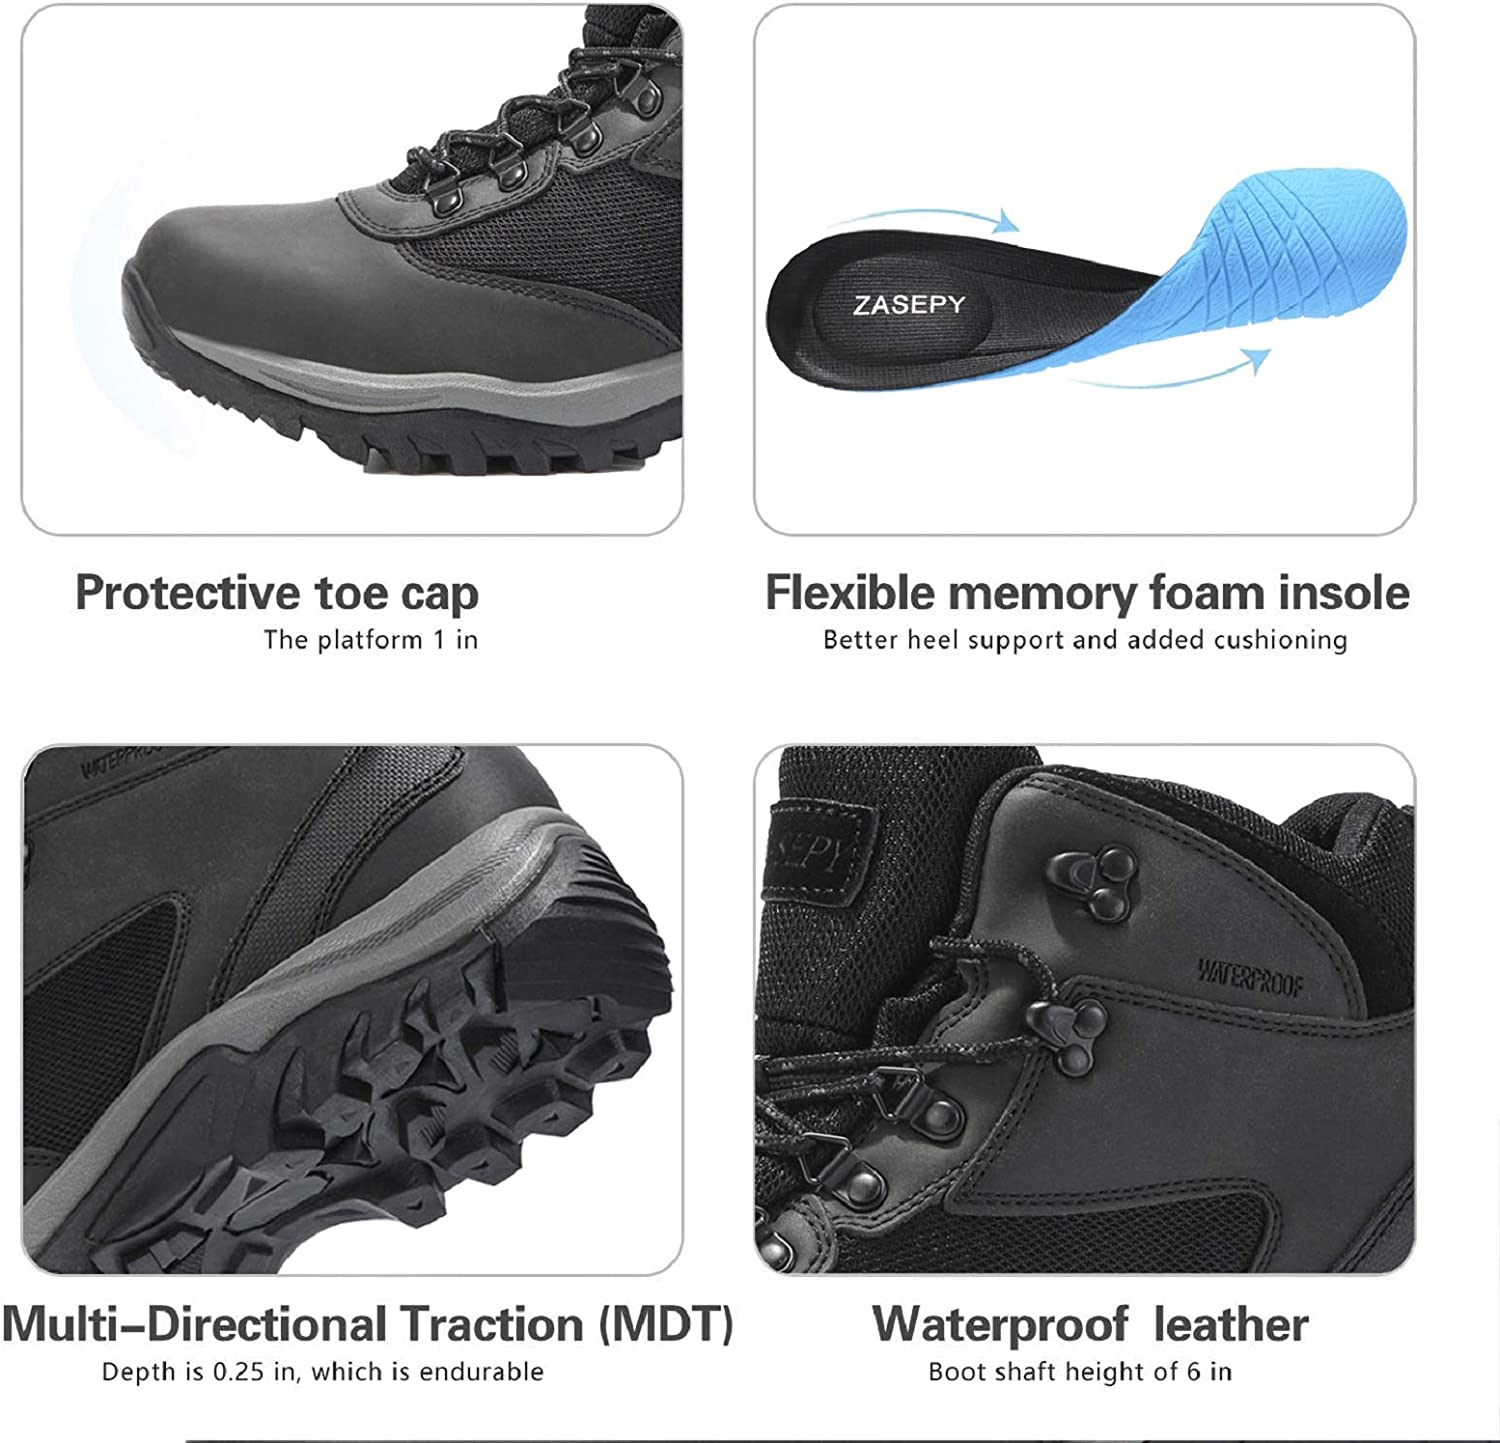 ZASEPY Mens Waterproof Hiking Boots Lightweight Outdoor Hike Shoes Non Slip Mid Top Trekking Backpacking Mountaineering Ankle Boot